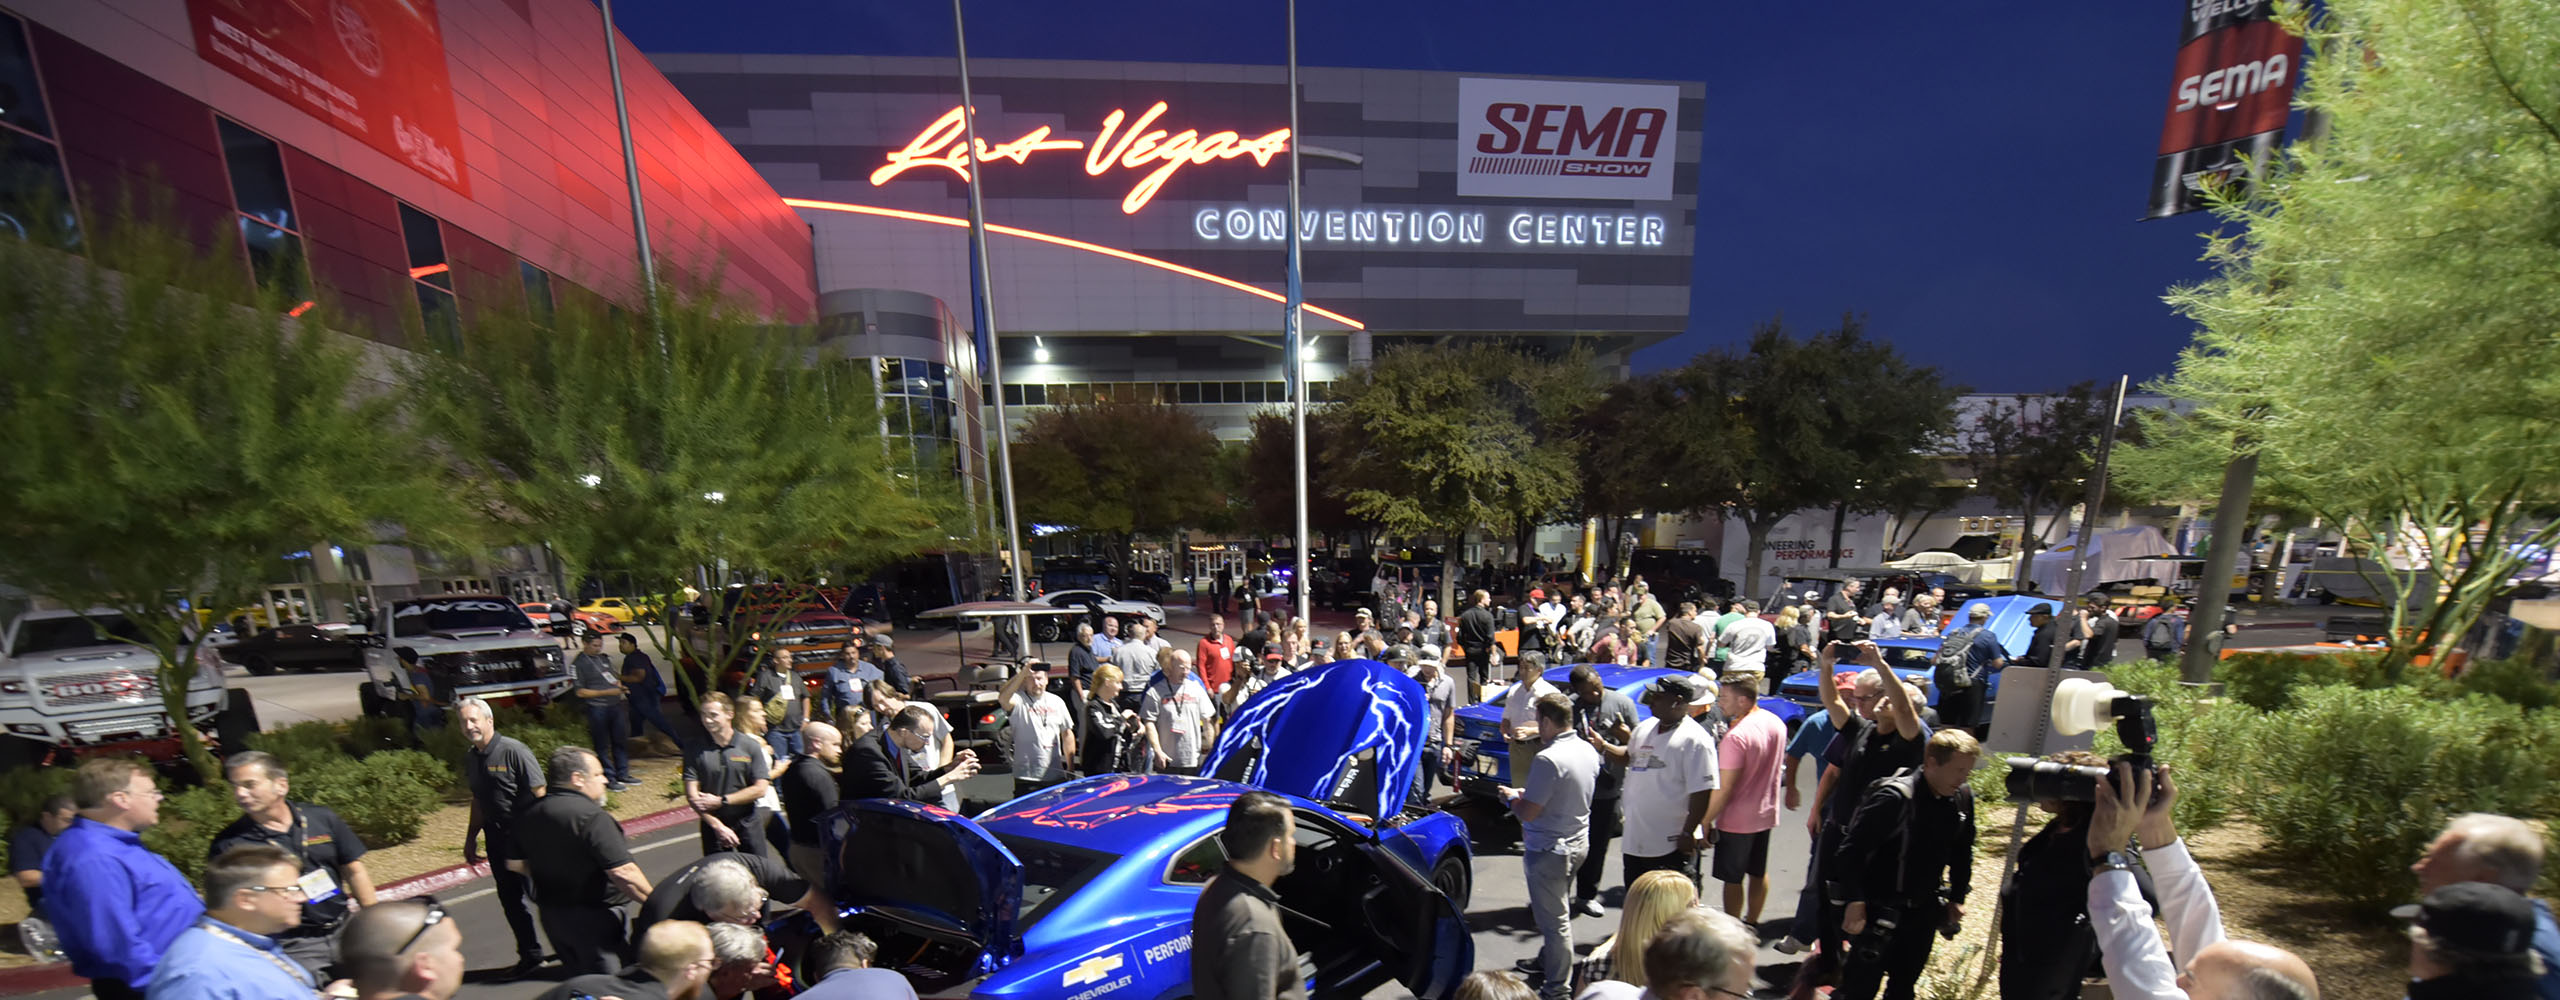 2020 SEMA SHOW - Thank you Exhibitors for a fantastic show!